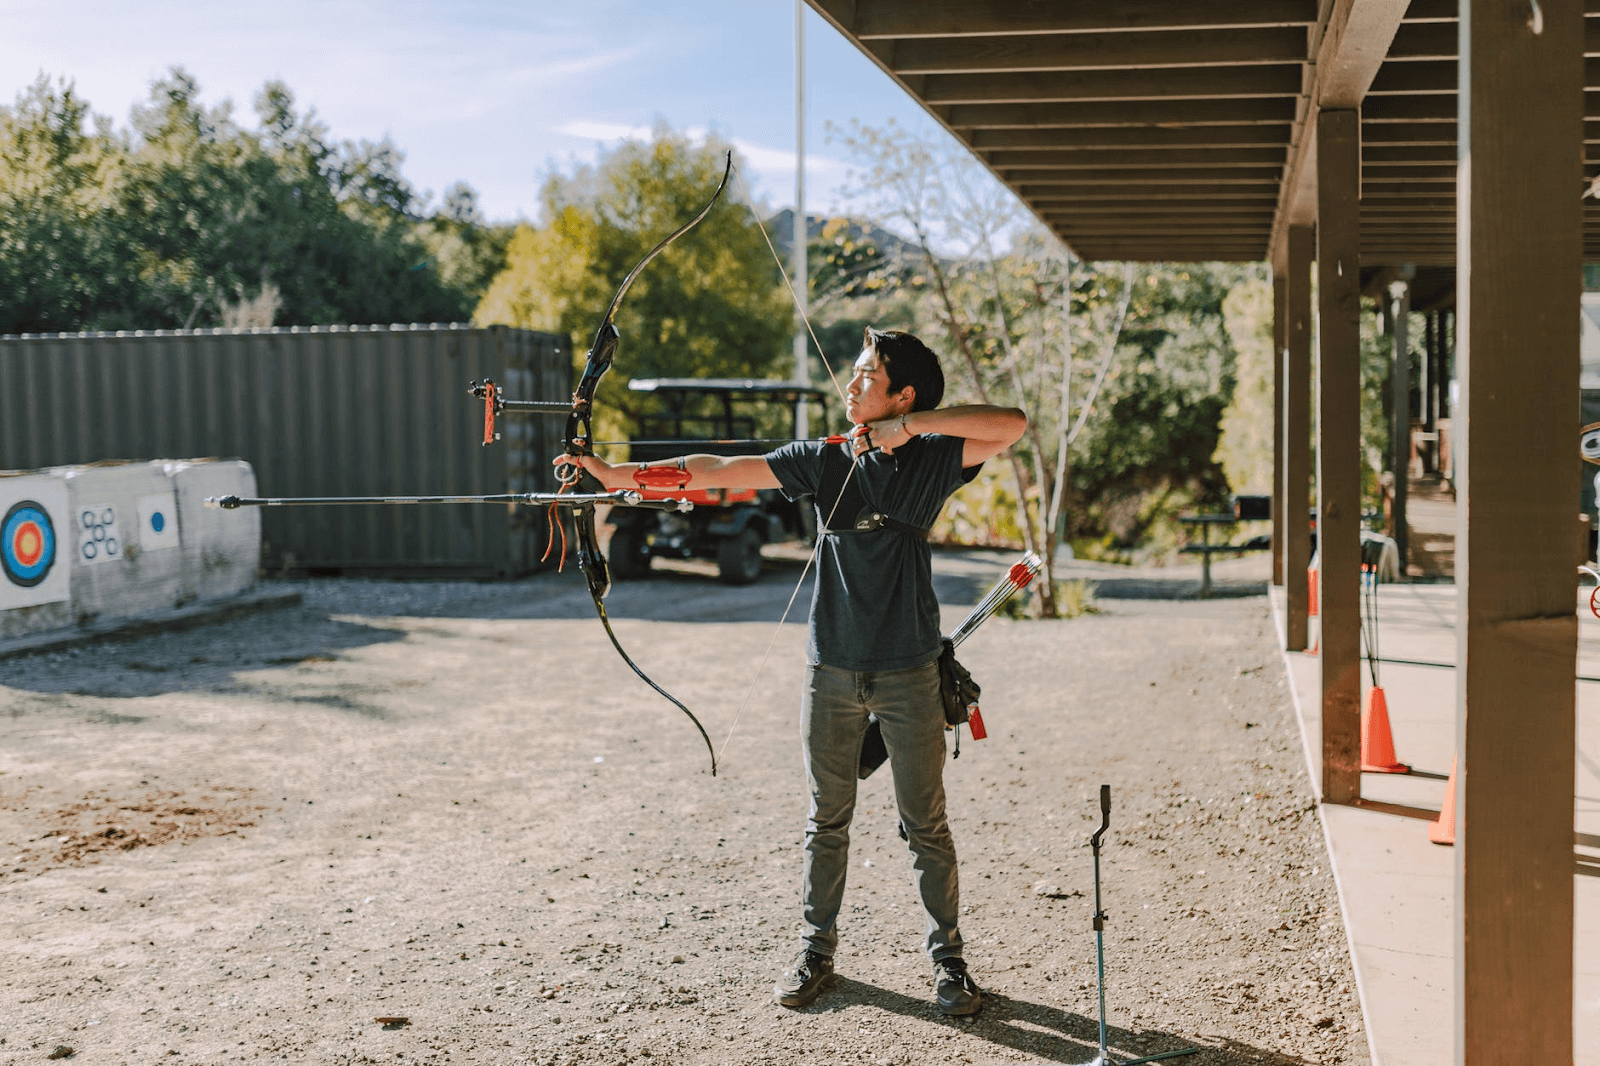 Man aiming a recurve bow with a stabilizer